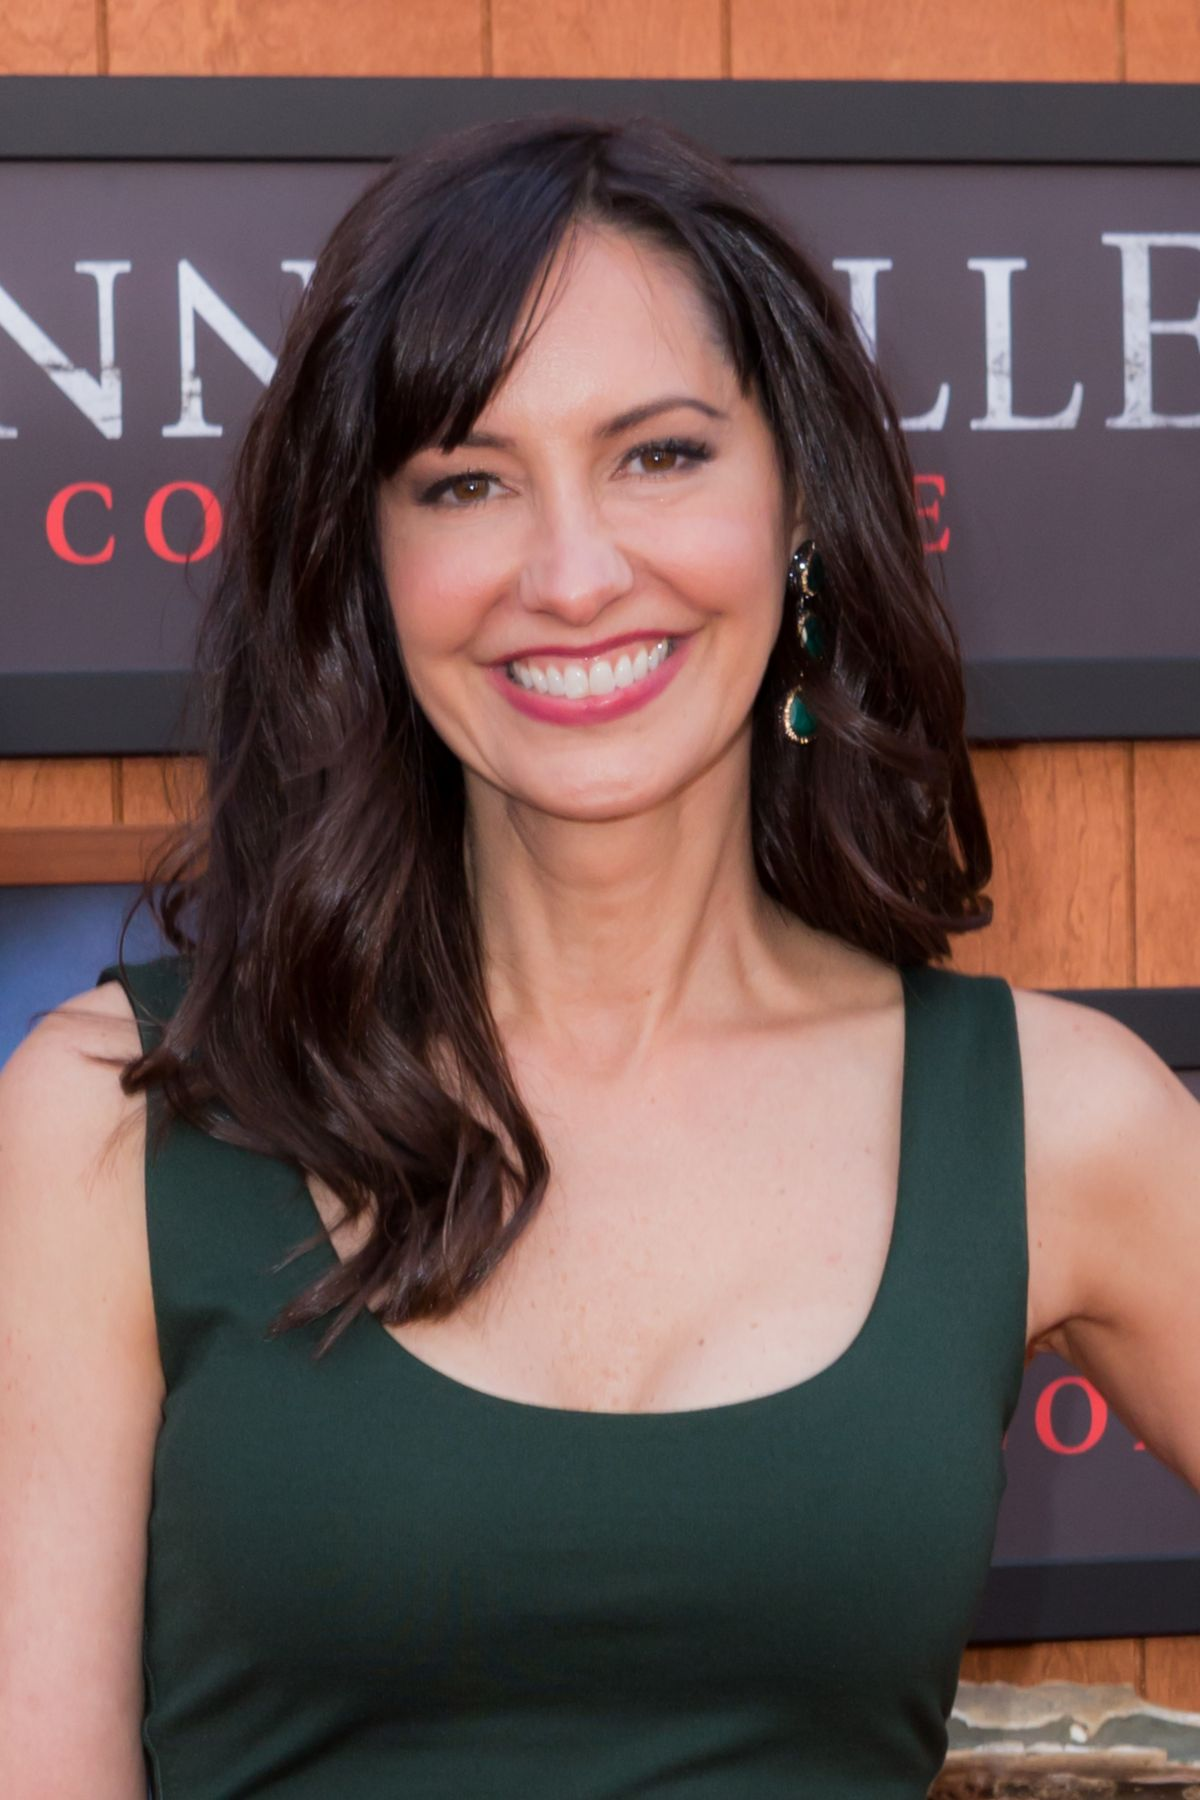 CHARLENE AMOIA at Annabelle Comes Home Premiere in Westwood 06/20/2019 –  Сelebs of World